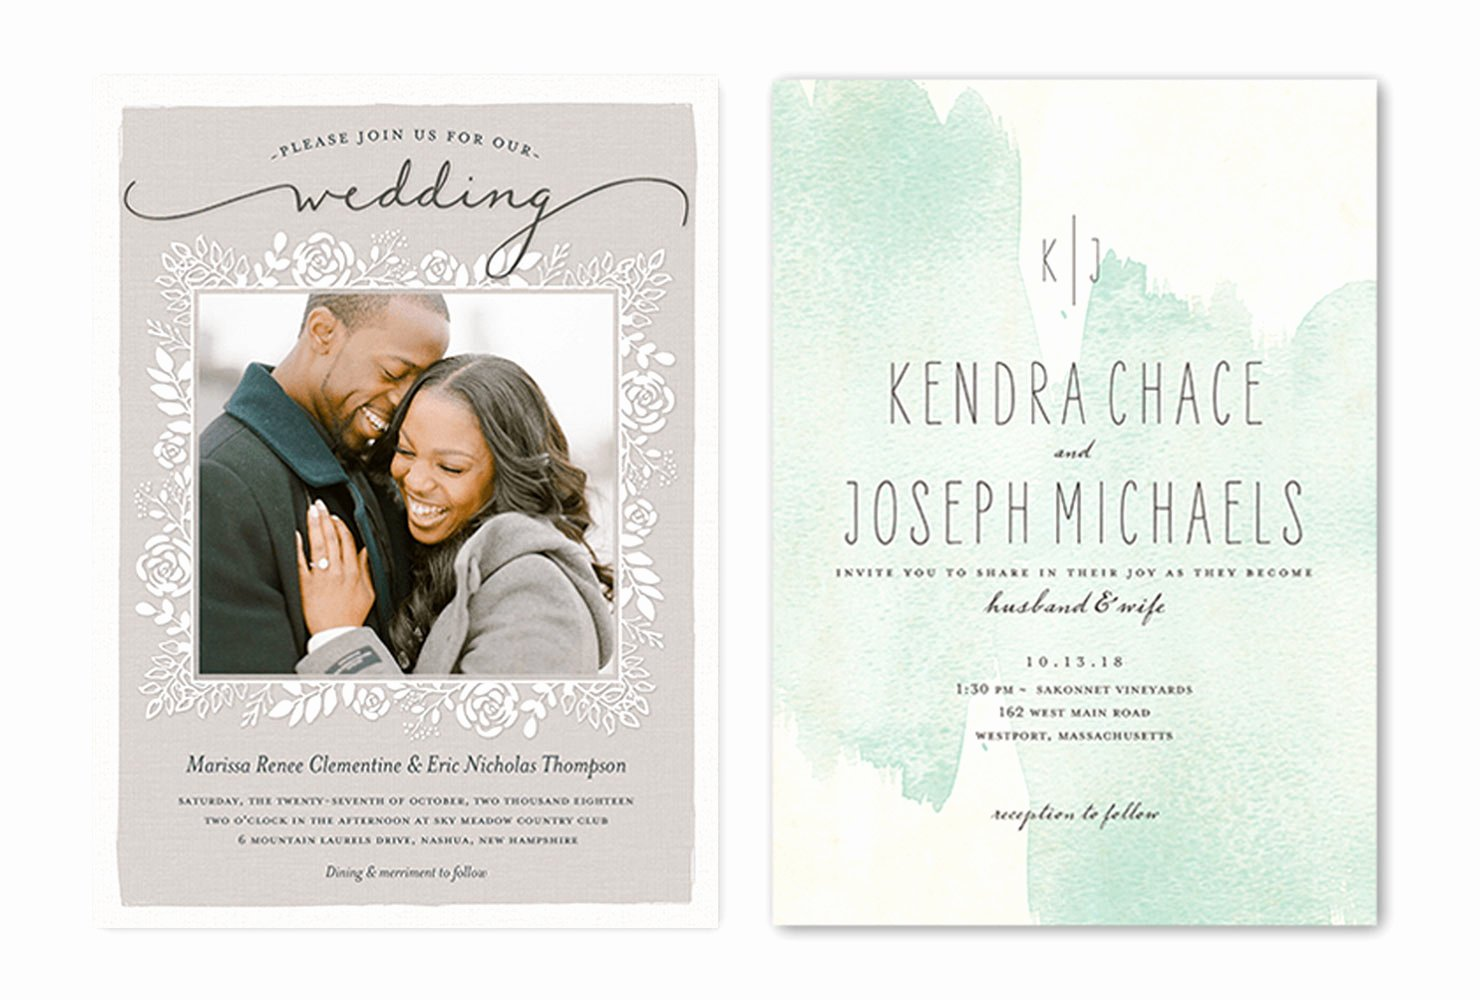 Wedding Invitation Wording Template Unique 35 Wedding Invitation Wording Examples 2019